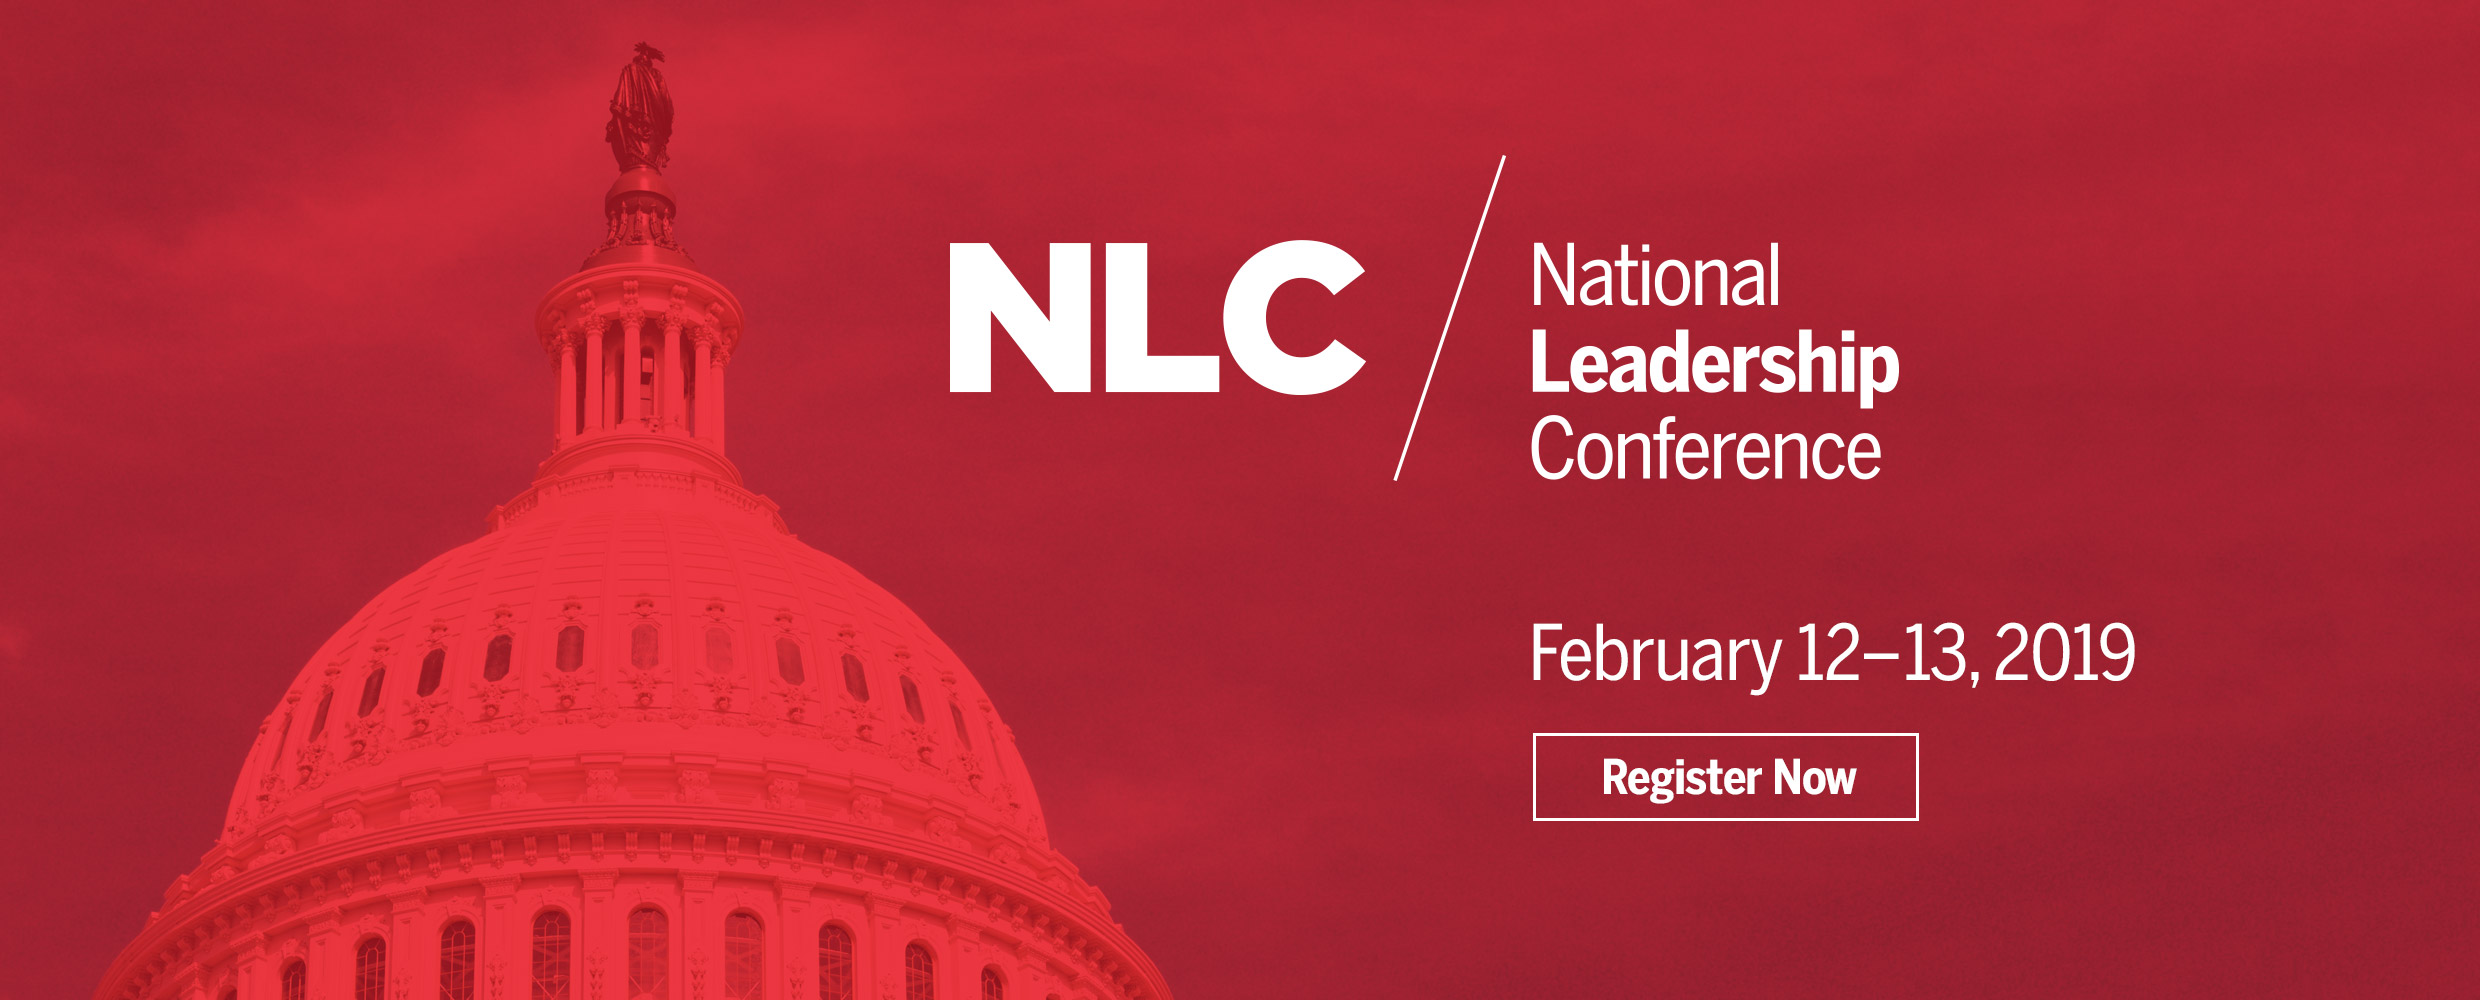 NLC 2019 Registration